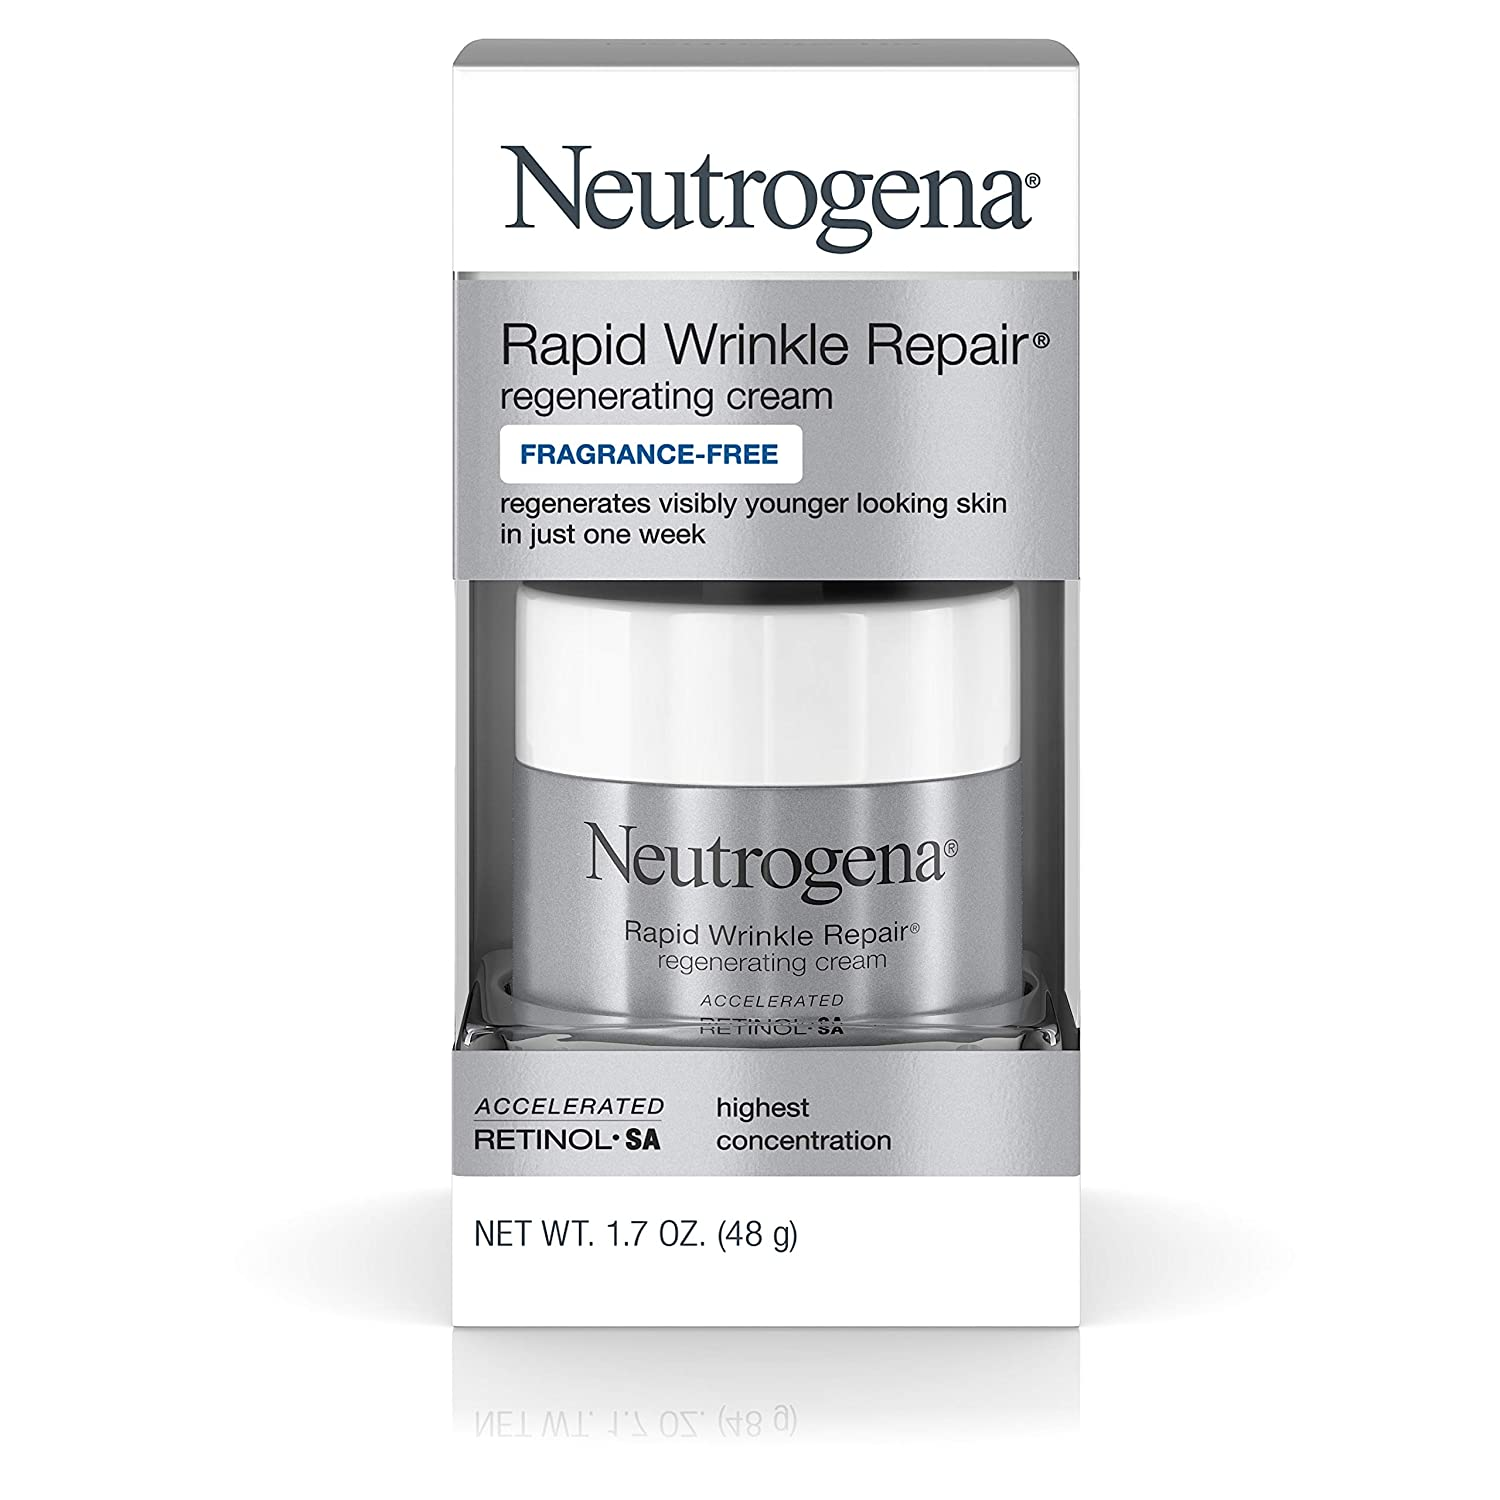 Neutrogena Rapid Wrinkle Repair and Regenerating Cream